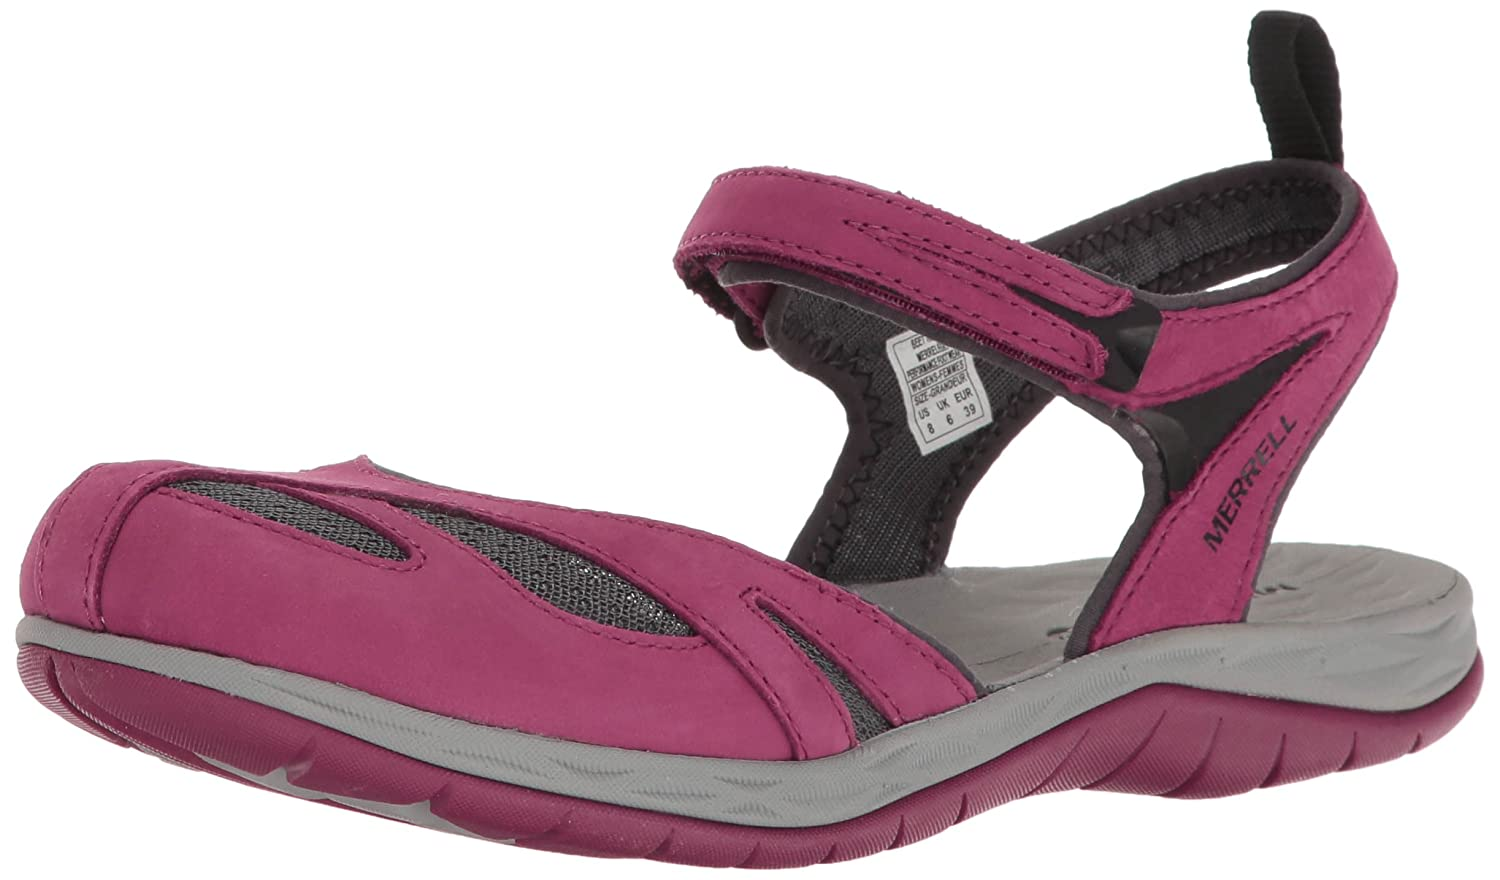 Merrell Women's Siren Wrap Q2 Athletic Sandal B01HGW62PG 7 B(M) US|Beet Red